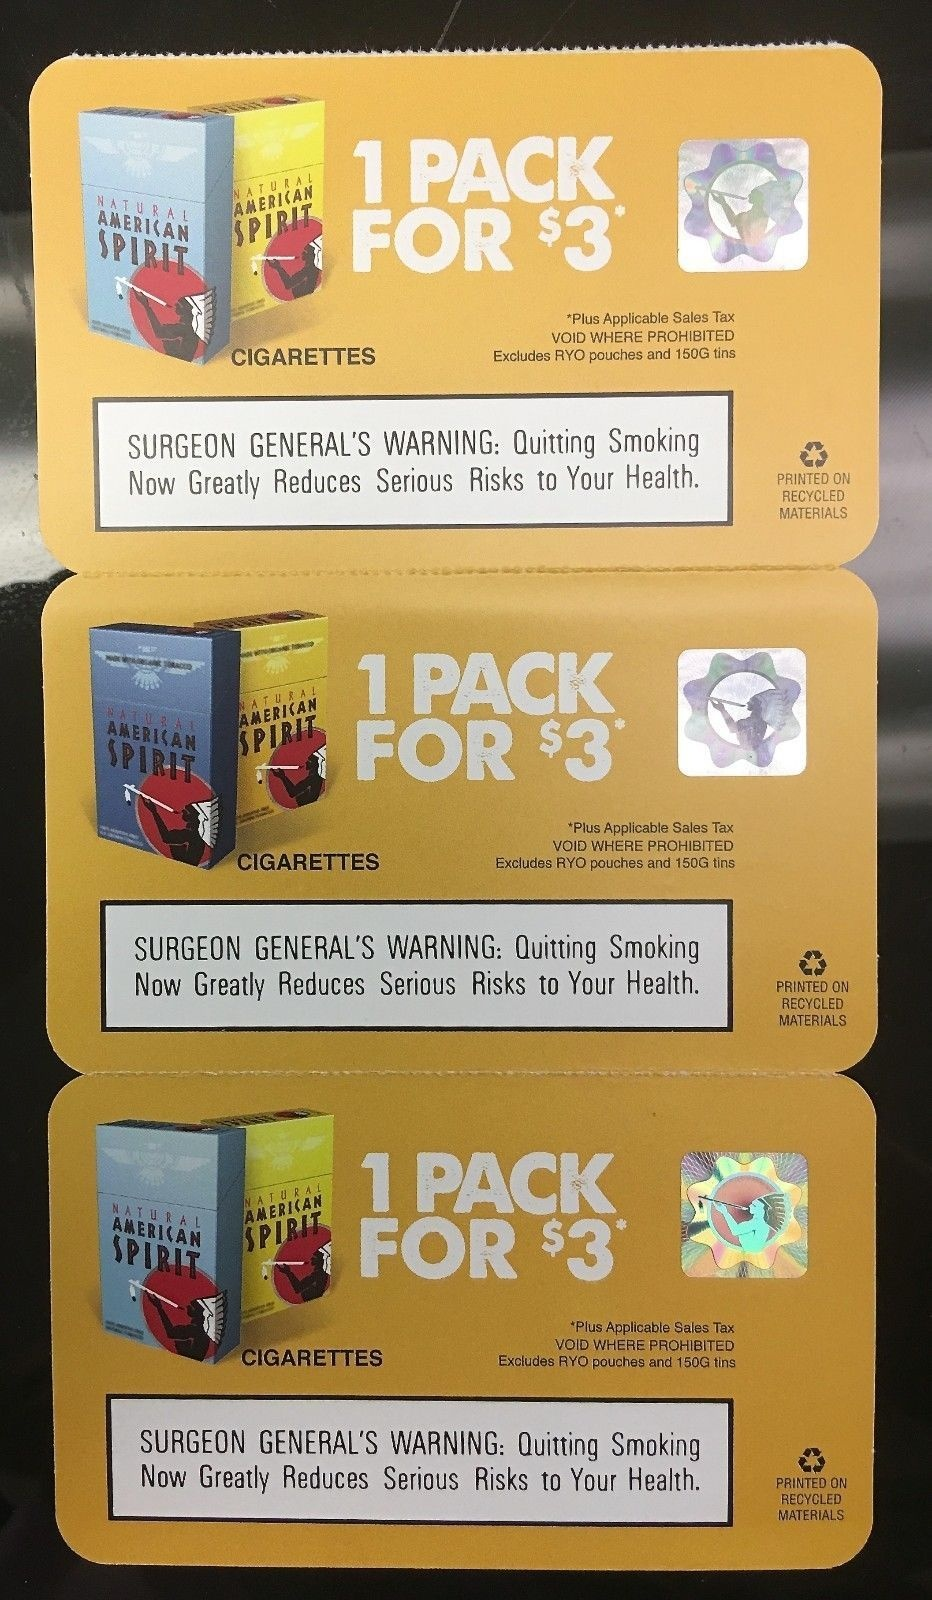 Free Pack Of Cigarettes Coupon - Wow - Image Results | Cigarette - Free Pack Of Cigarettes Printable Coupon